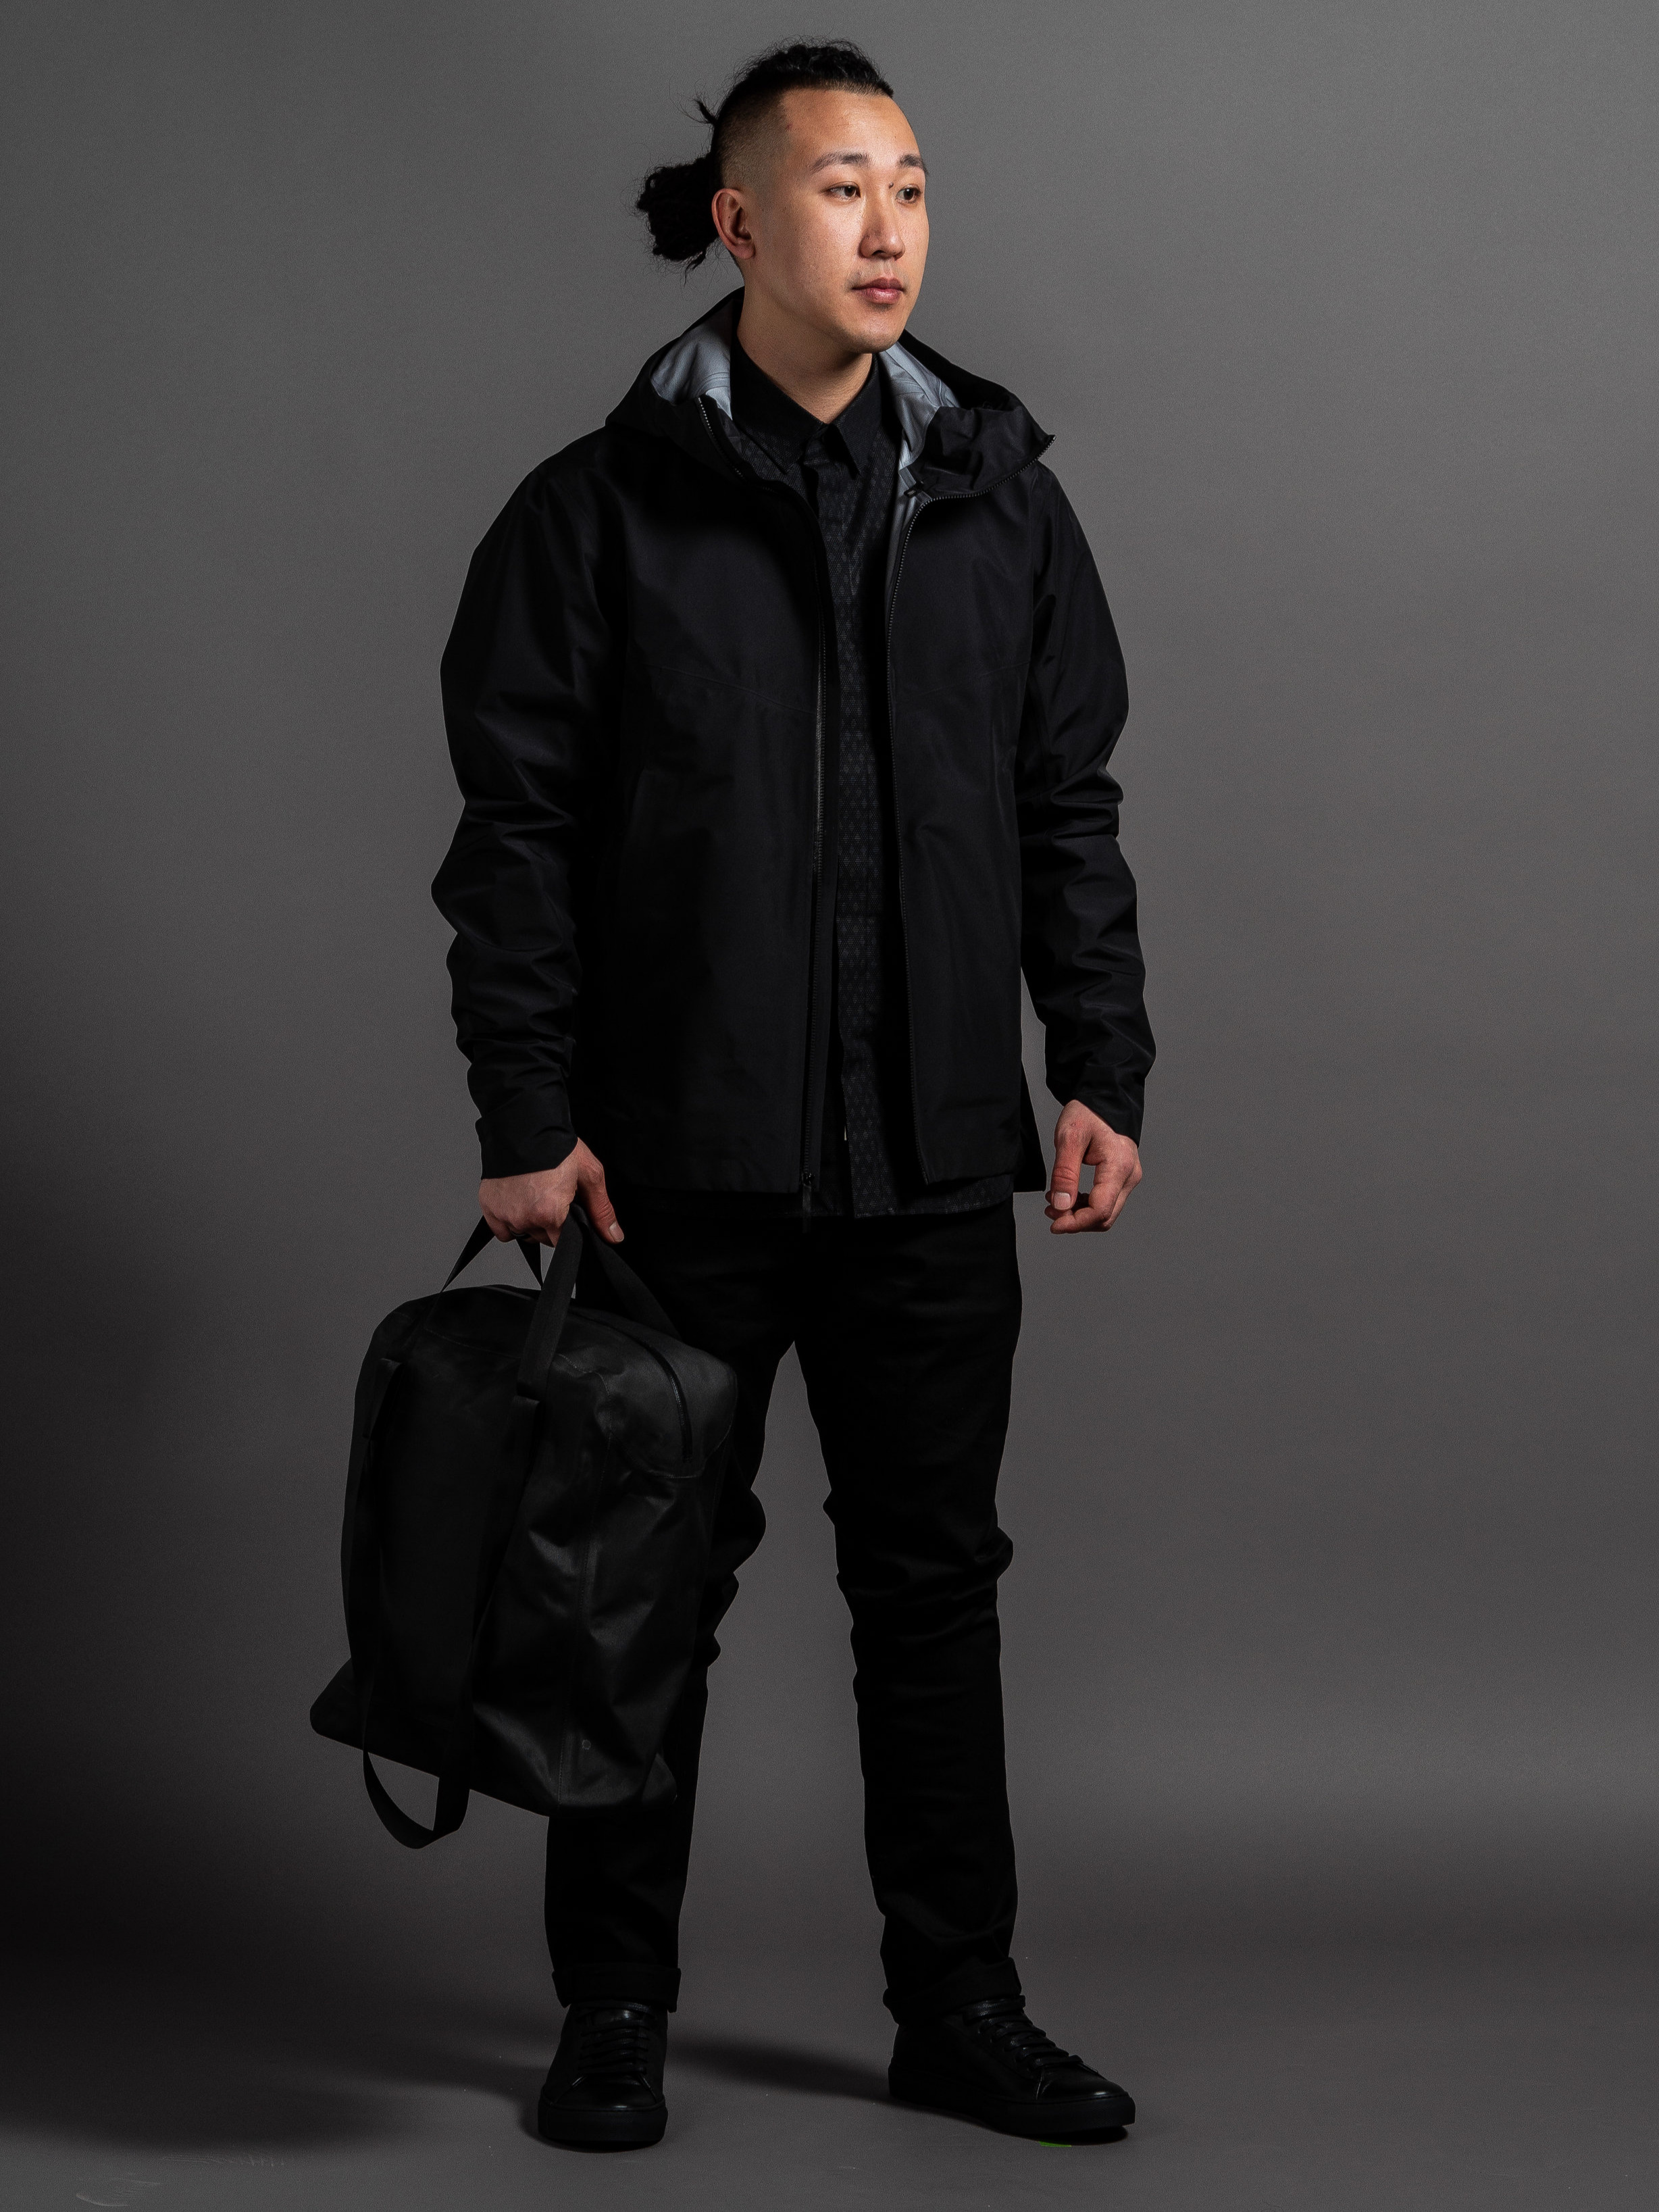 Arc'teryx Veilance Arris Jacket  Outclass Diamond Dobby Dress Shirt  Outclass Stretch Chinos  Arc'teryx Veilance Seque Tote  Wings + Horns Court Sneakers    SHOP THIS LOOK